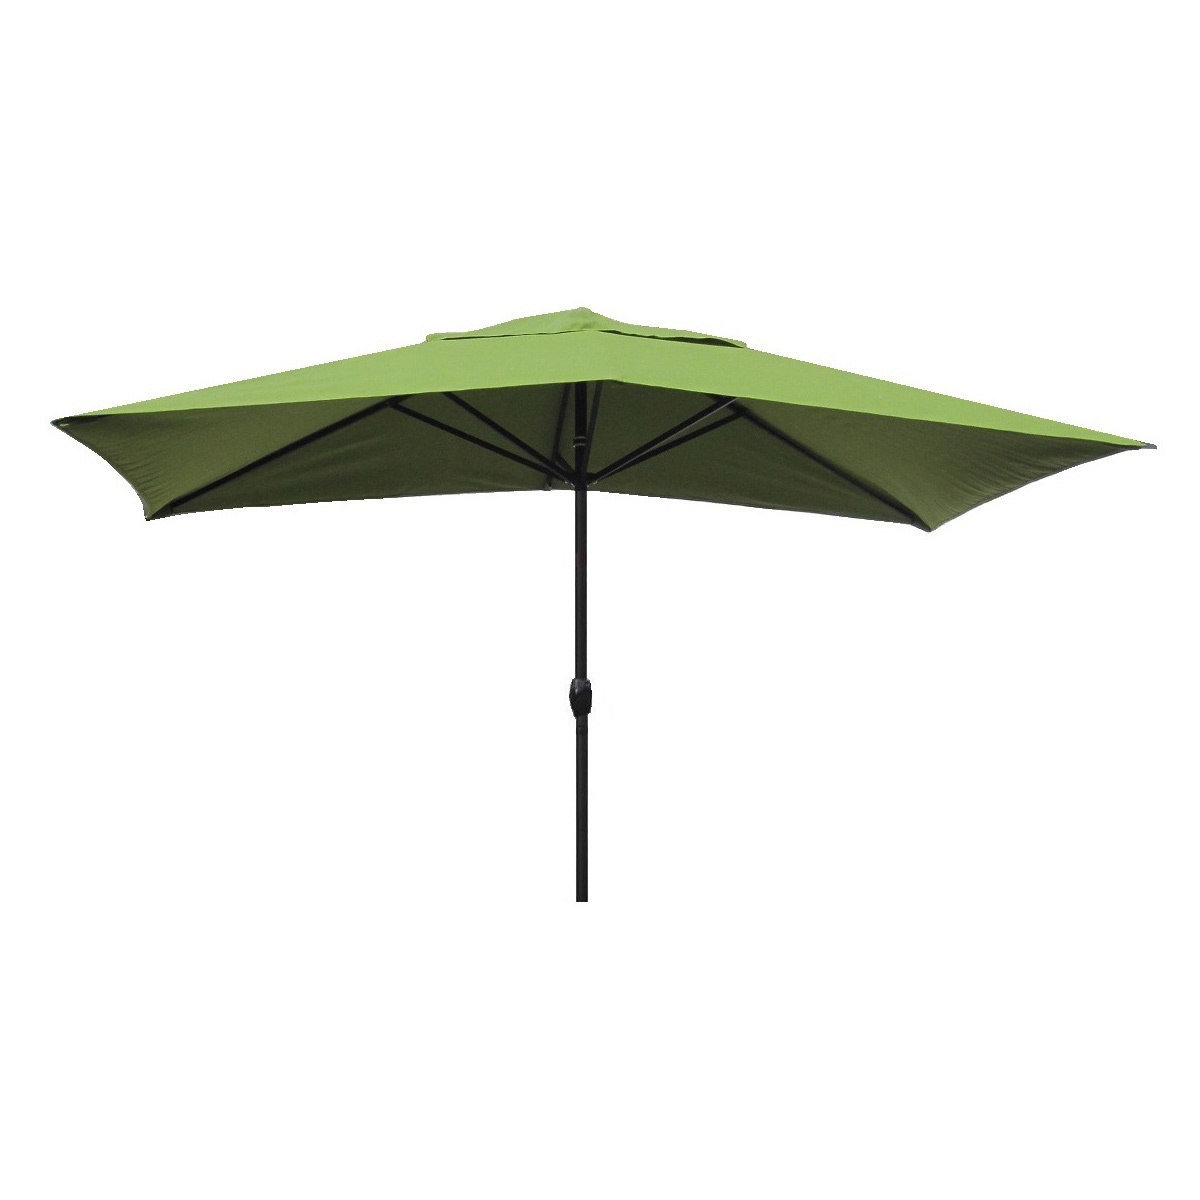 Popular Gries 10' X 6' Rectangular Market Umbrella Pertaining To Sherlyn Rectangular Market Umbrellas (View 7 of 20)